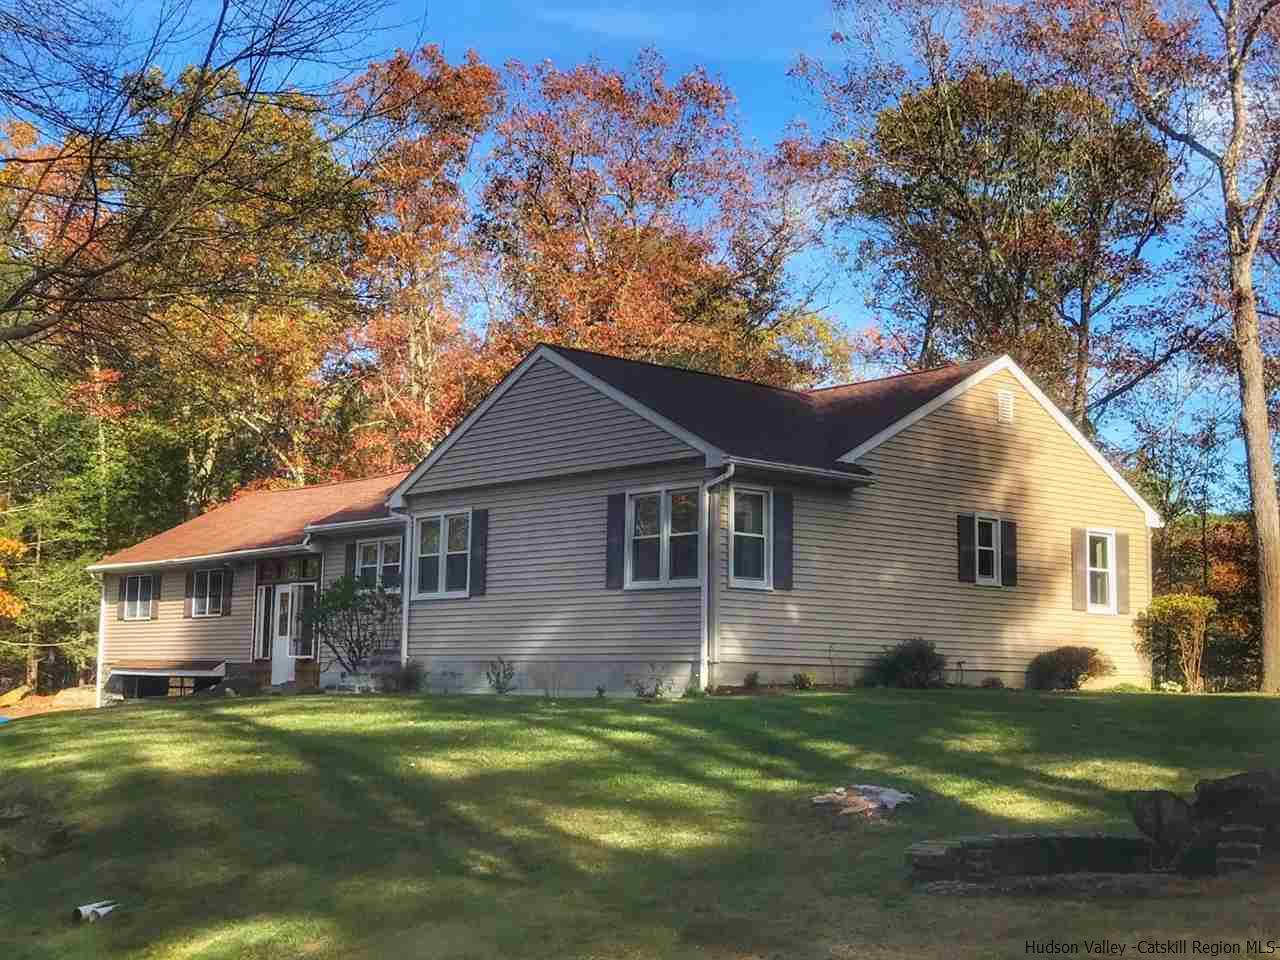 Single Family Home for Sale at 372 Stone Road 372 Stone Road West Hurley, New York 12494 United States